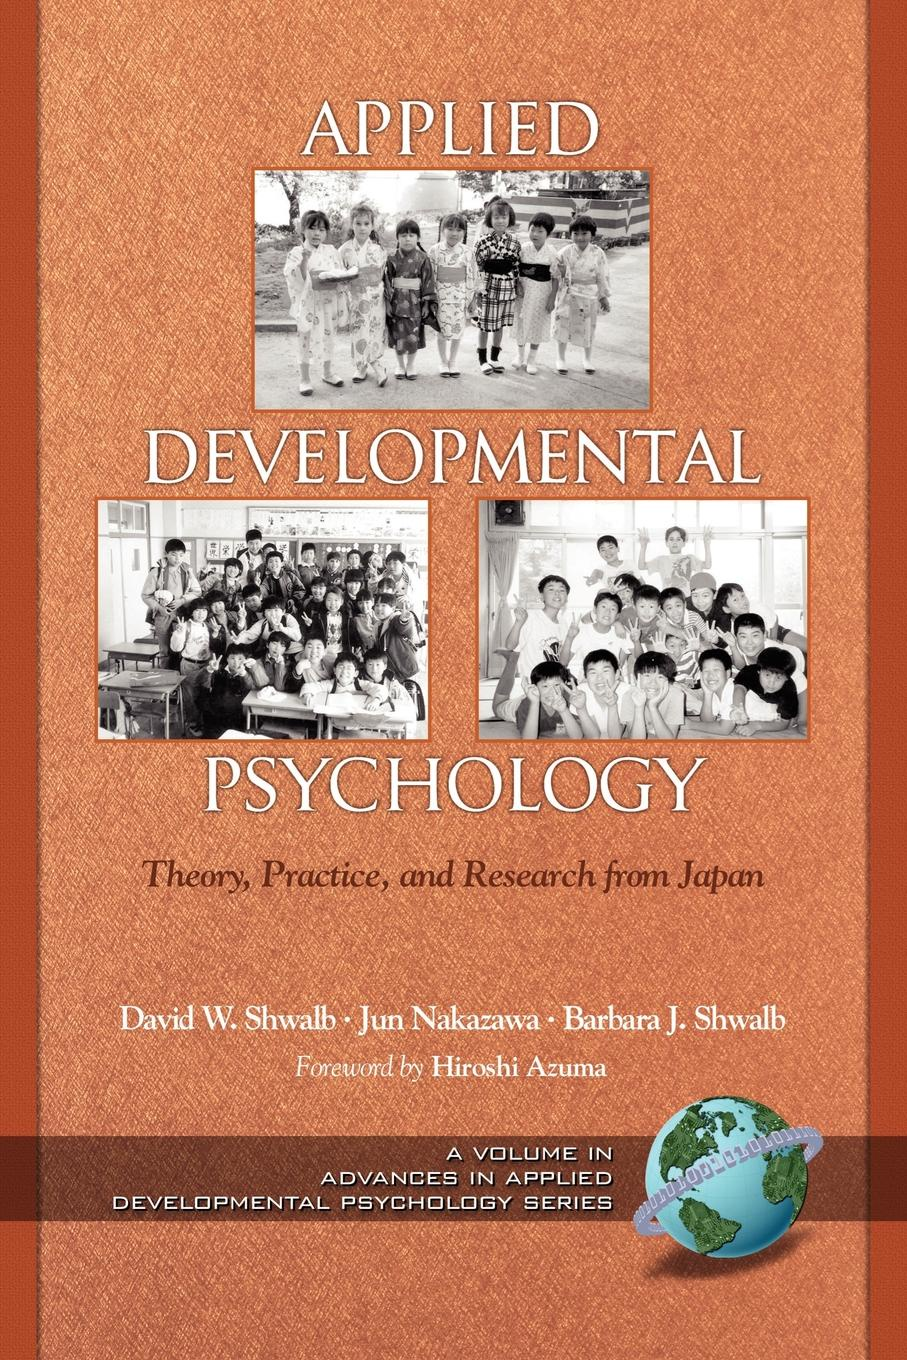 Applied Developmental Psychology. Theory, Practice, and Research from Japan (PB) developmental climate and professional excellence